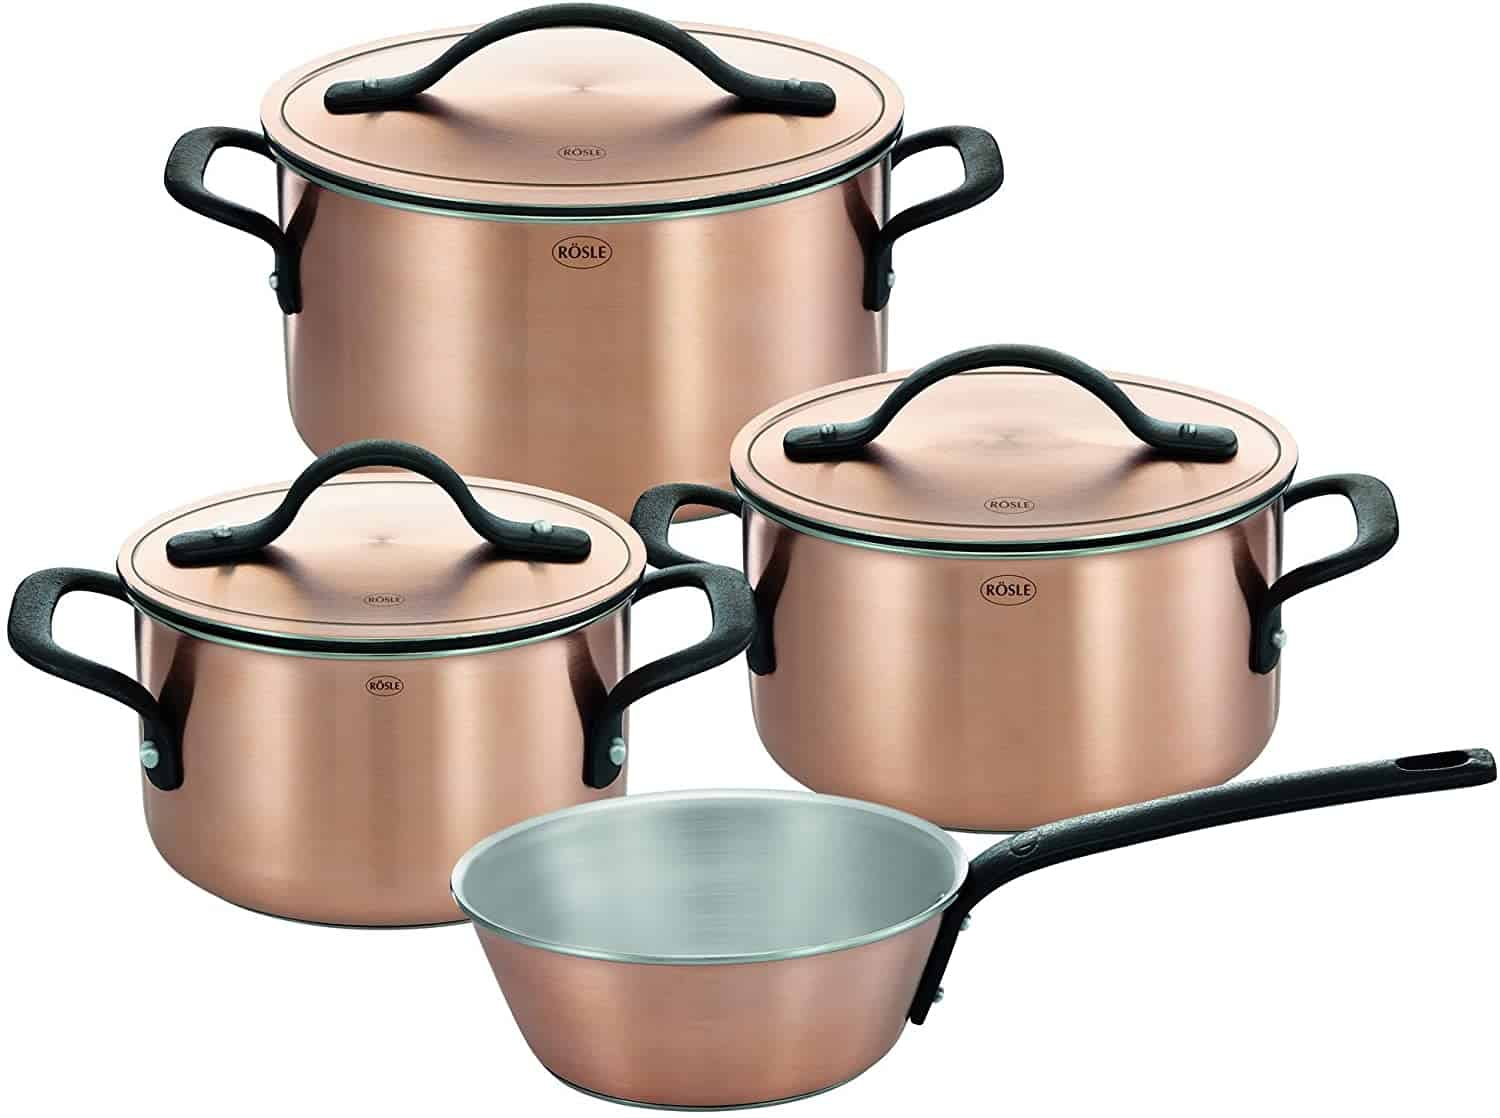 Best copper stock pot: Rössle Chalet